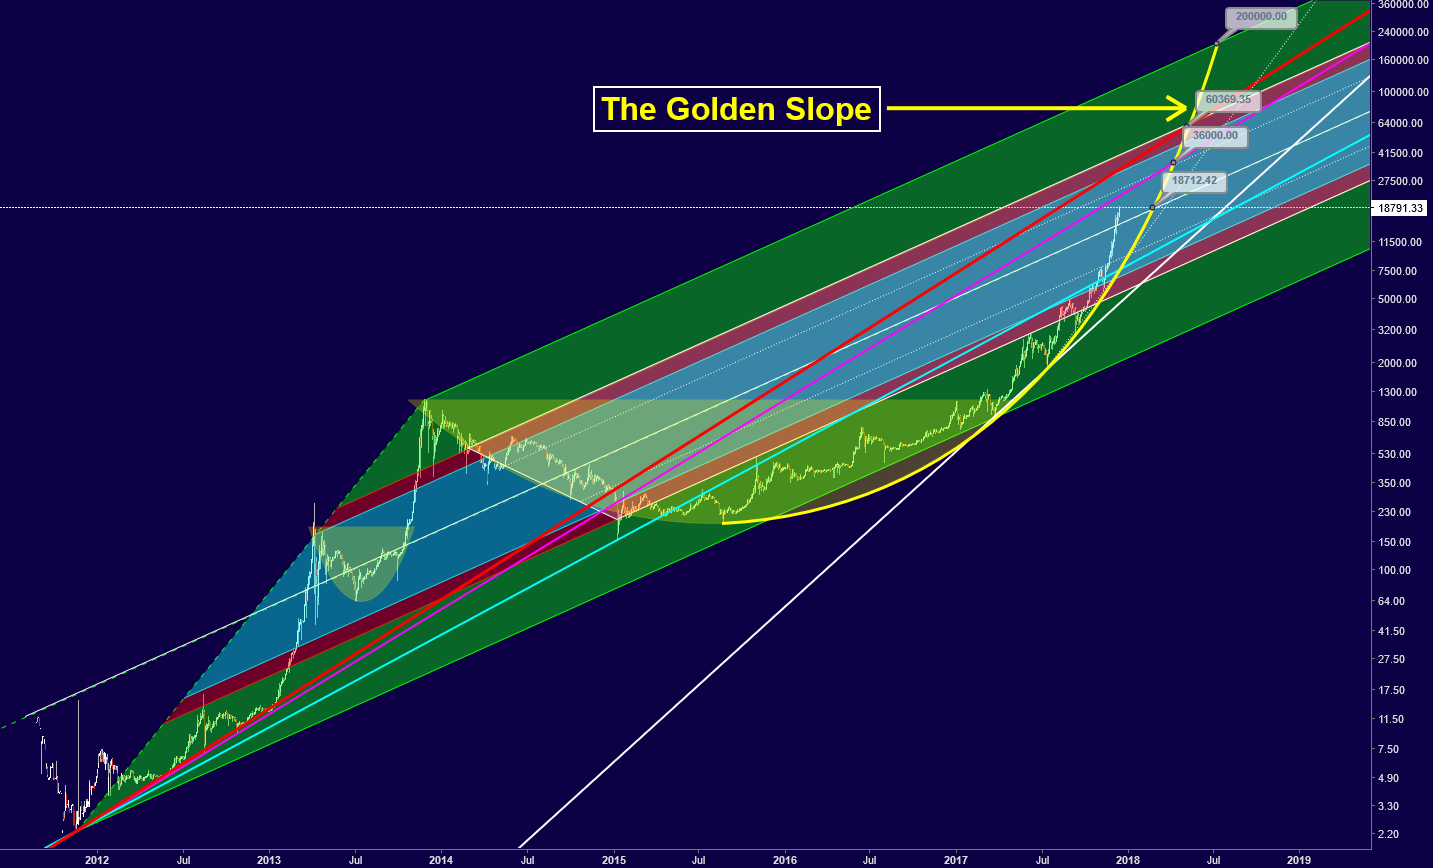 Bitcoin - Golden Slope